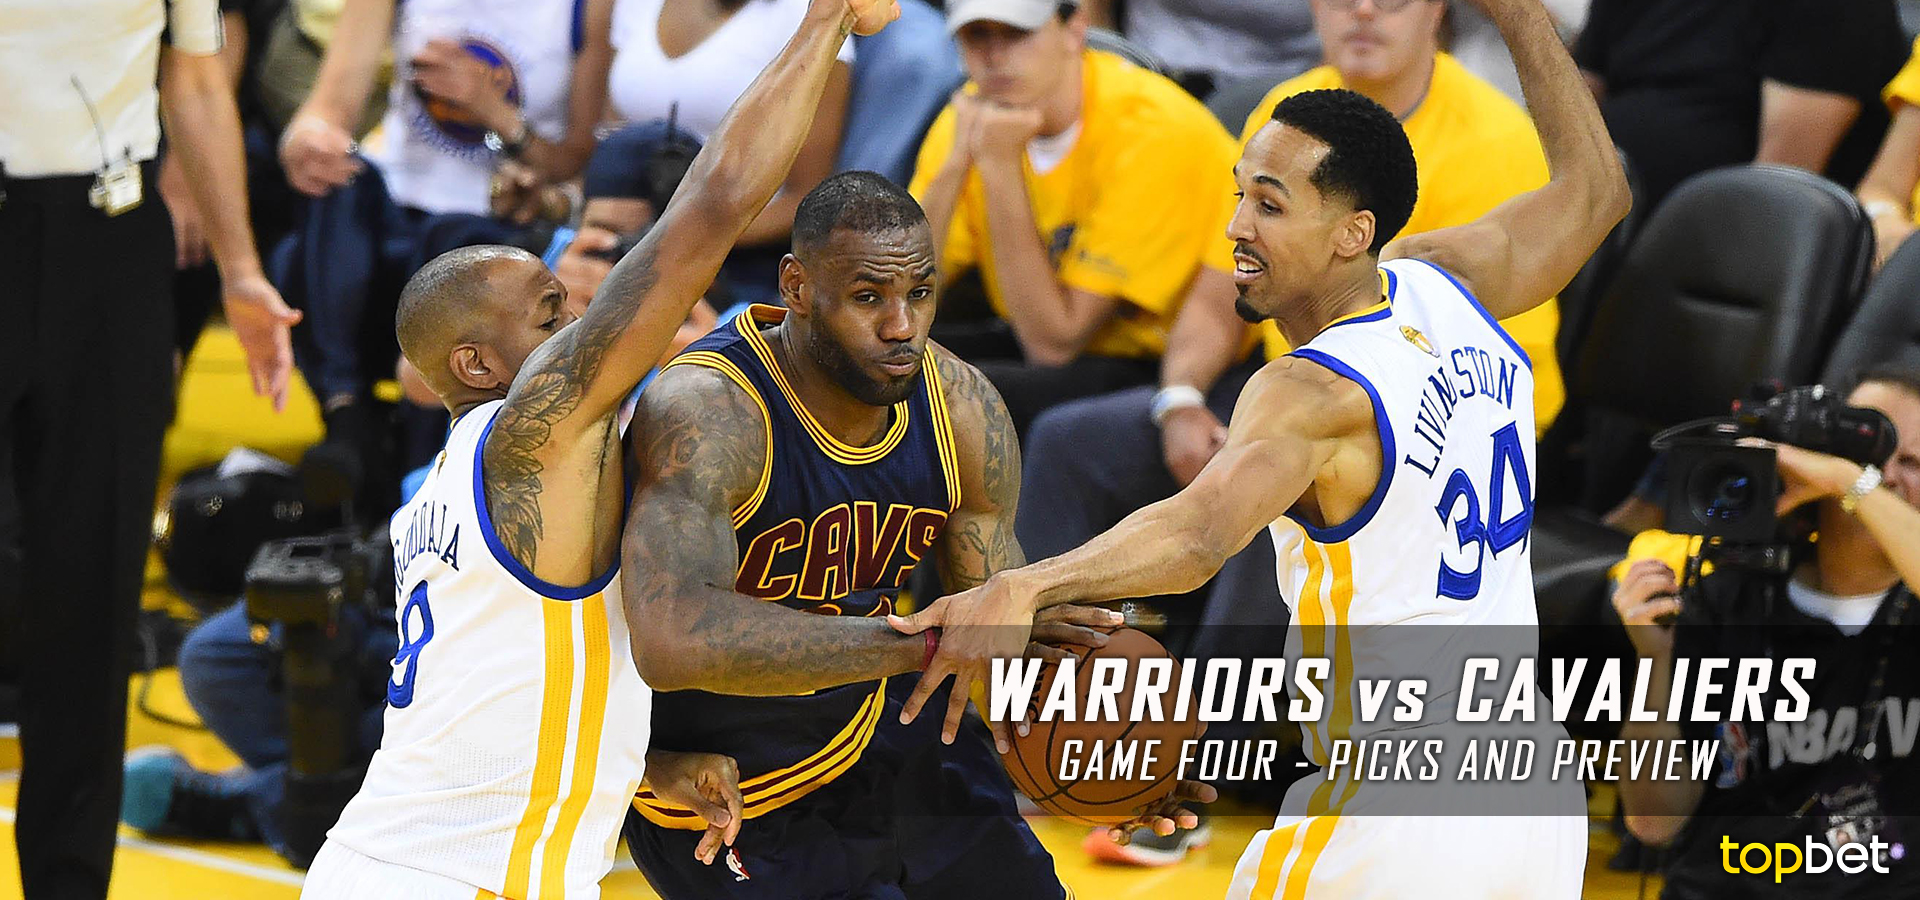 Cleveland Cavaliers Vs Golden State Warriors Game 1 Odds ...